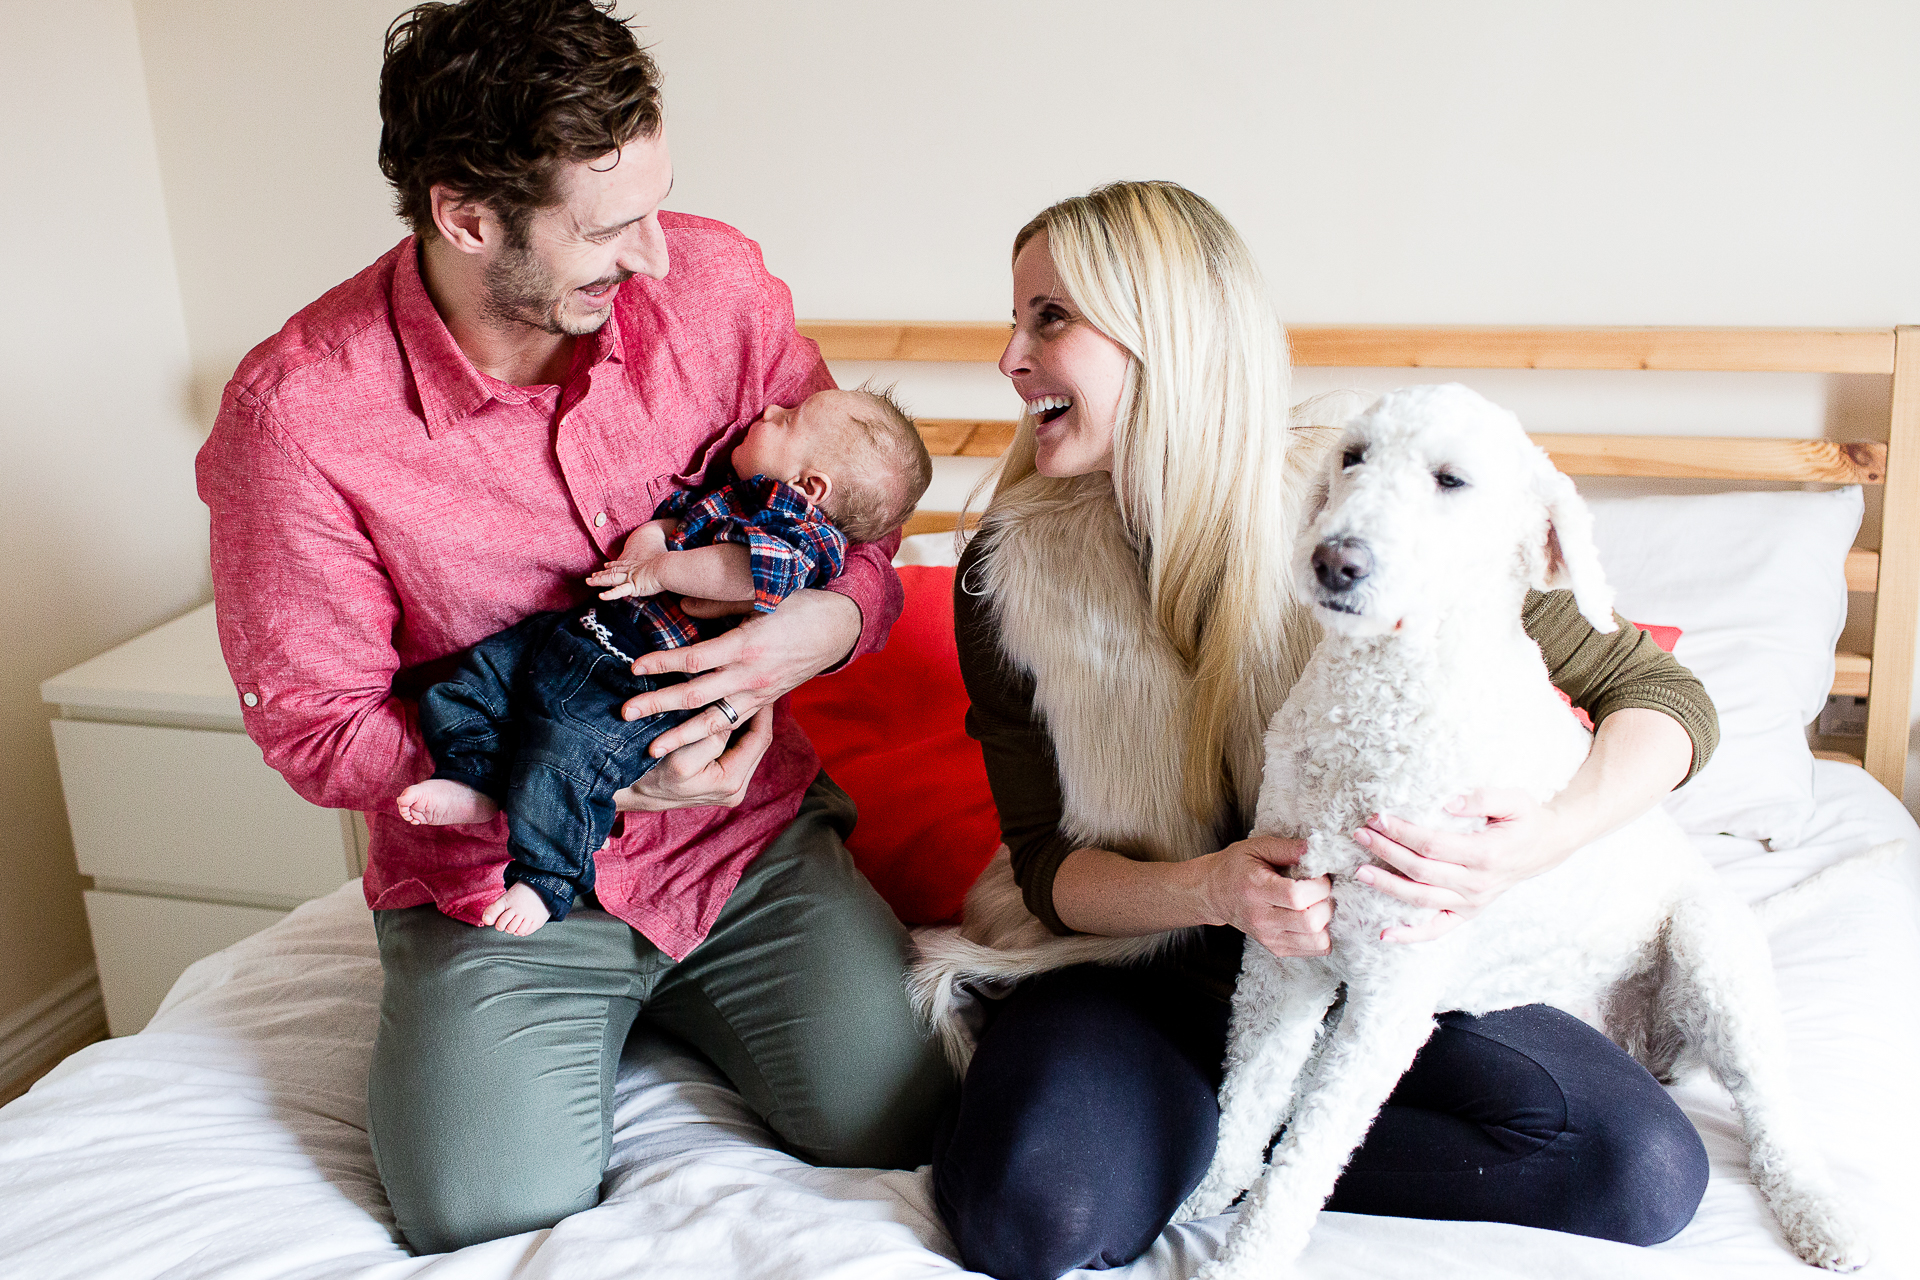 Photography of the Robinson family including the dog on this newborn baby photo session